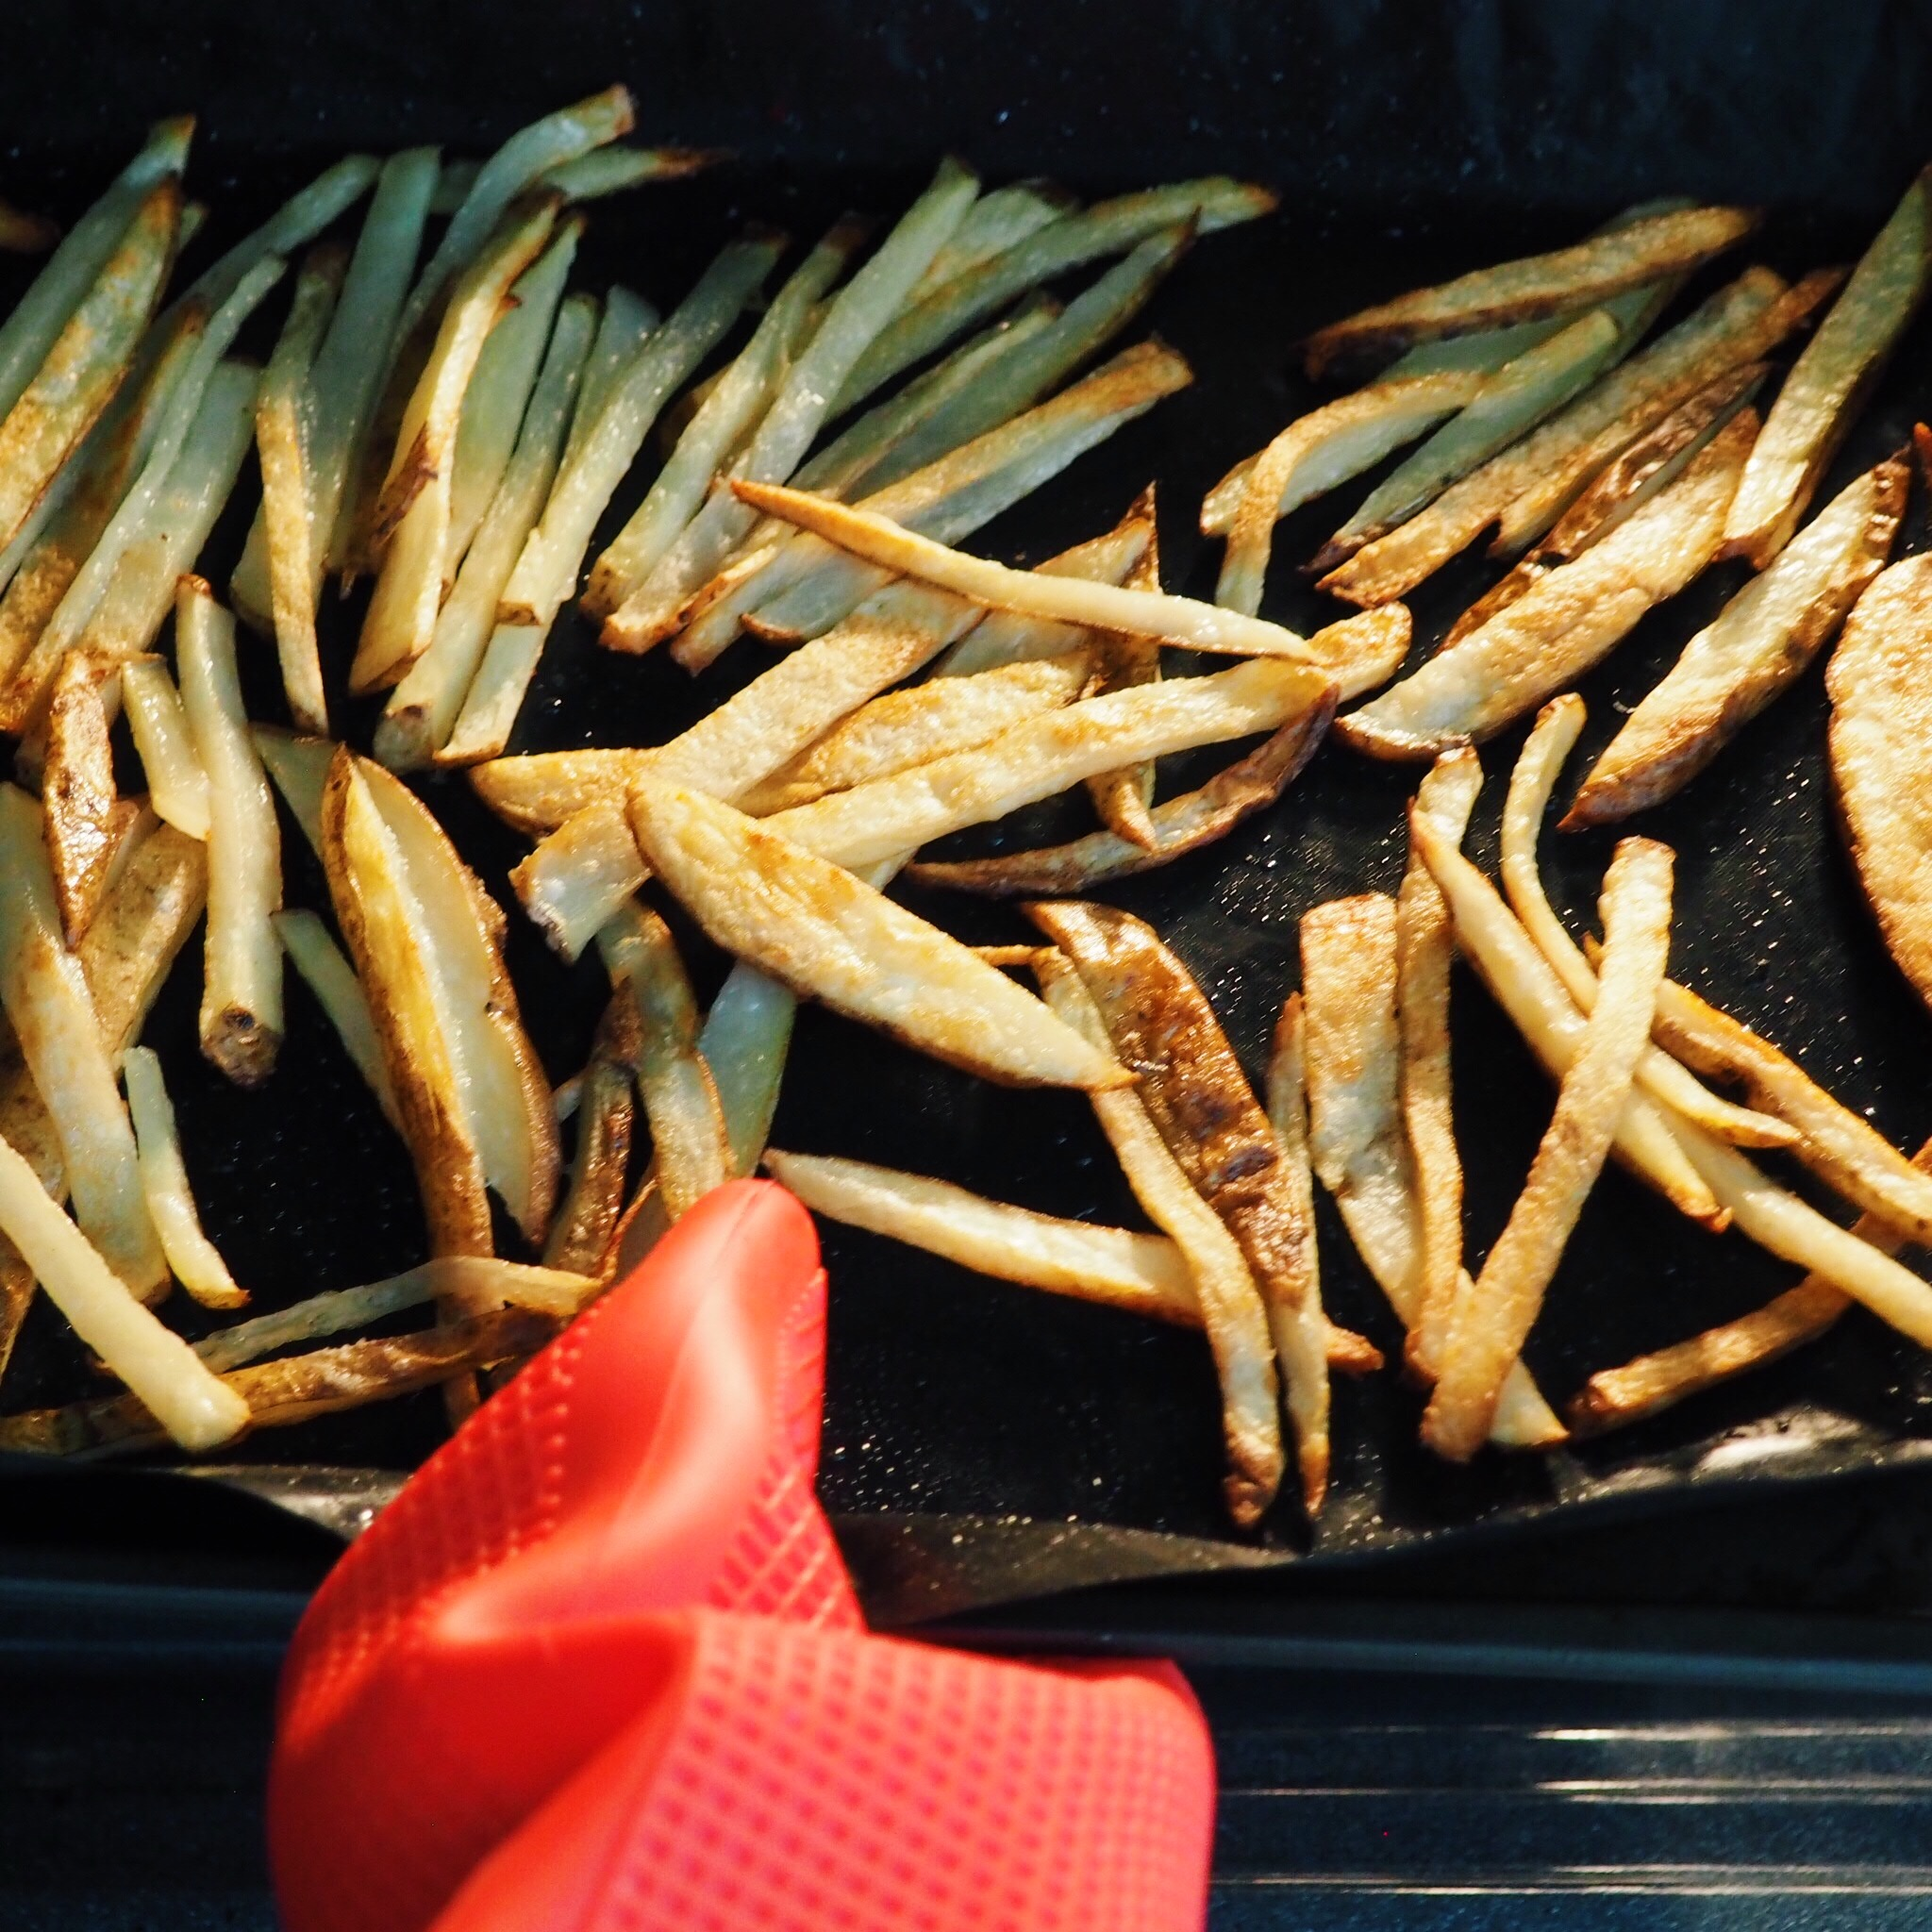 Step 12 - Once fries are golden crispy brown, remove from oven and plate them.